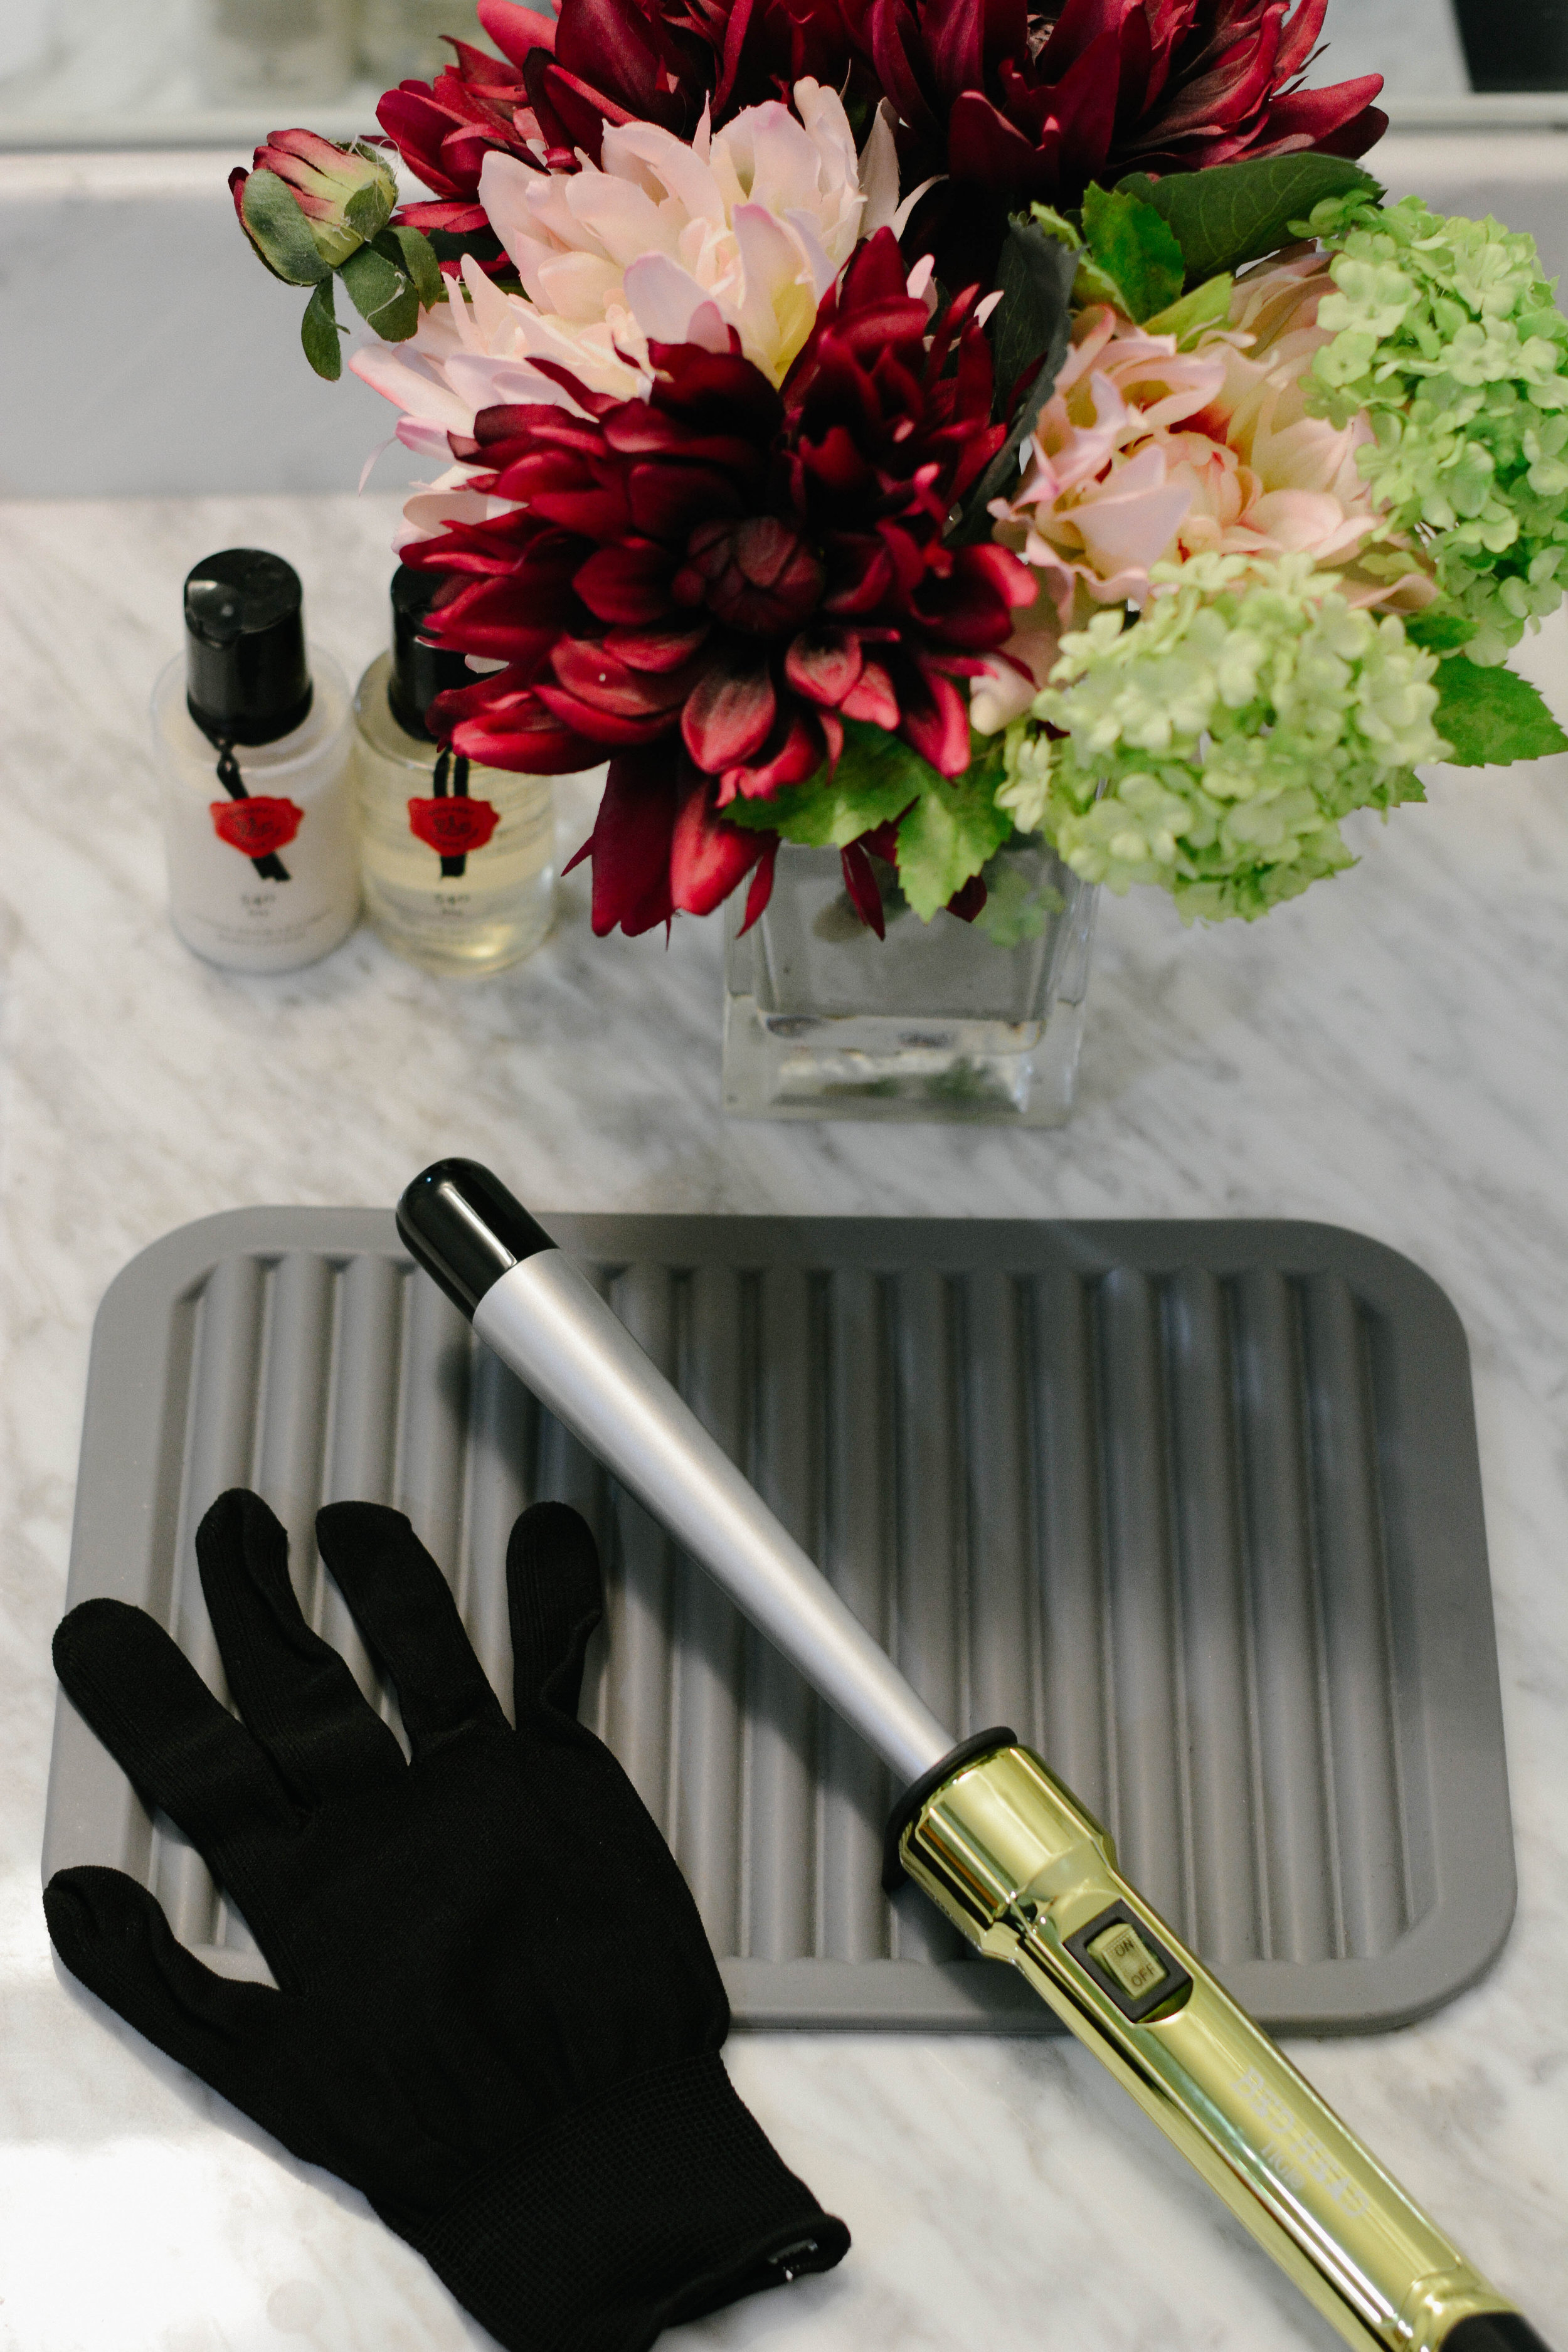 My favorite thing about this tool, is how easy it is to use. Being new to styling my hair, I am always looking for tools that will make the process quicker. There is just one heat setting (400° F), is clamp-free, and you wrap-and-go. Also, it comes with a heat-protective glove, which for me is a MUST. It has saved me from burning myself on several occasions.